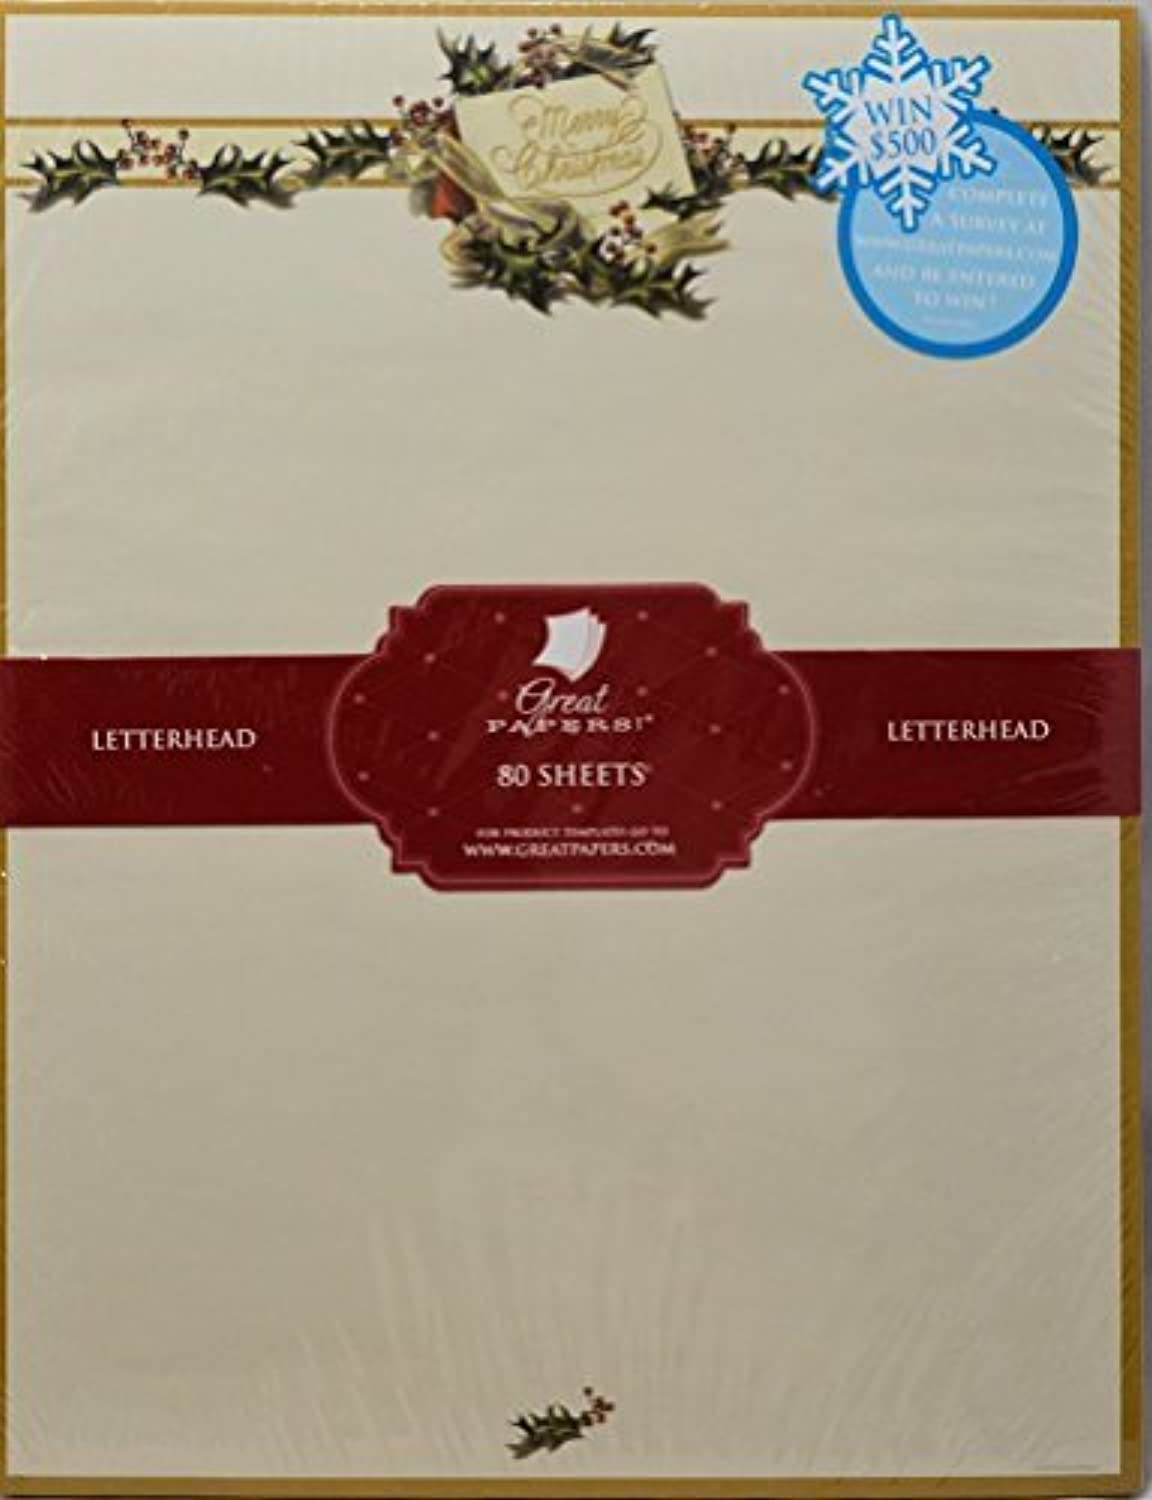 Vintage Christmas Holly Holly Holly Stationery - 80 Sheets by Great Papers  B018REEQ4G | Neues Design  bf09f2